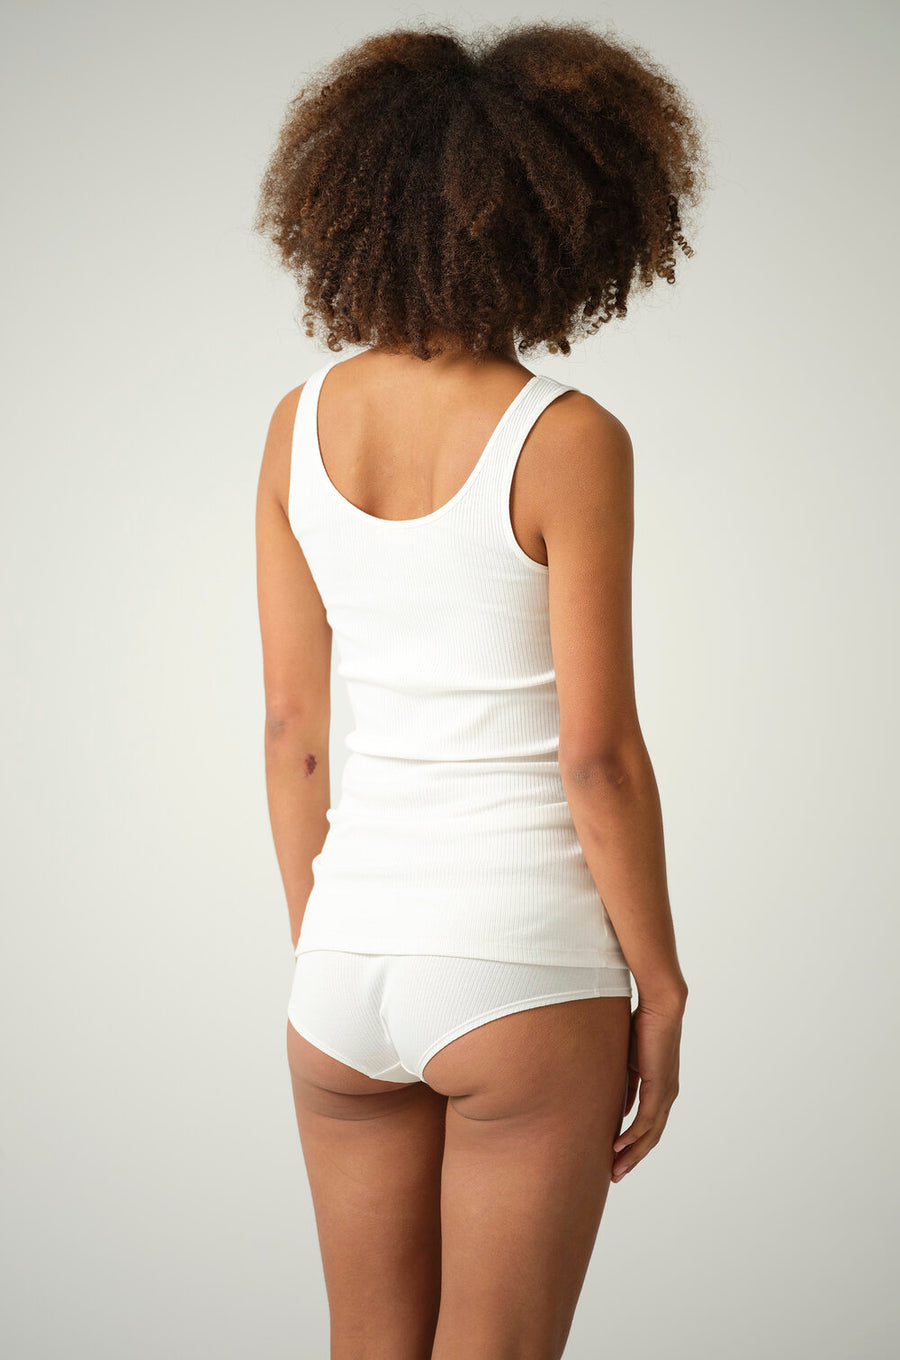 Annie and Bettie Organic Cotton Tank & Short Set in Black or Natural White